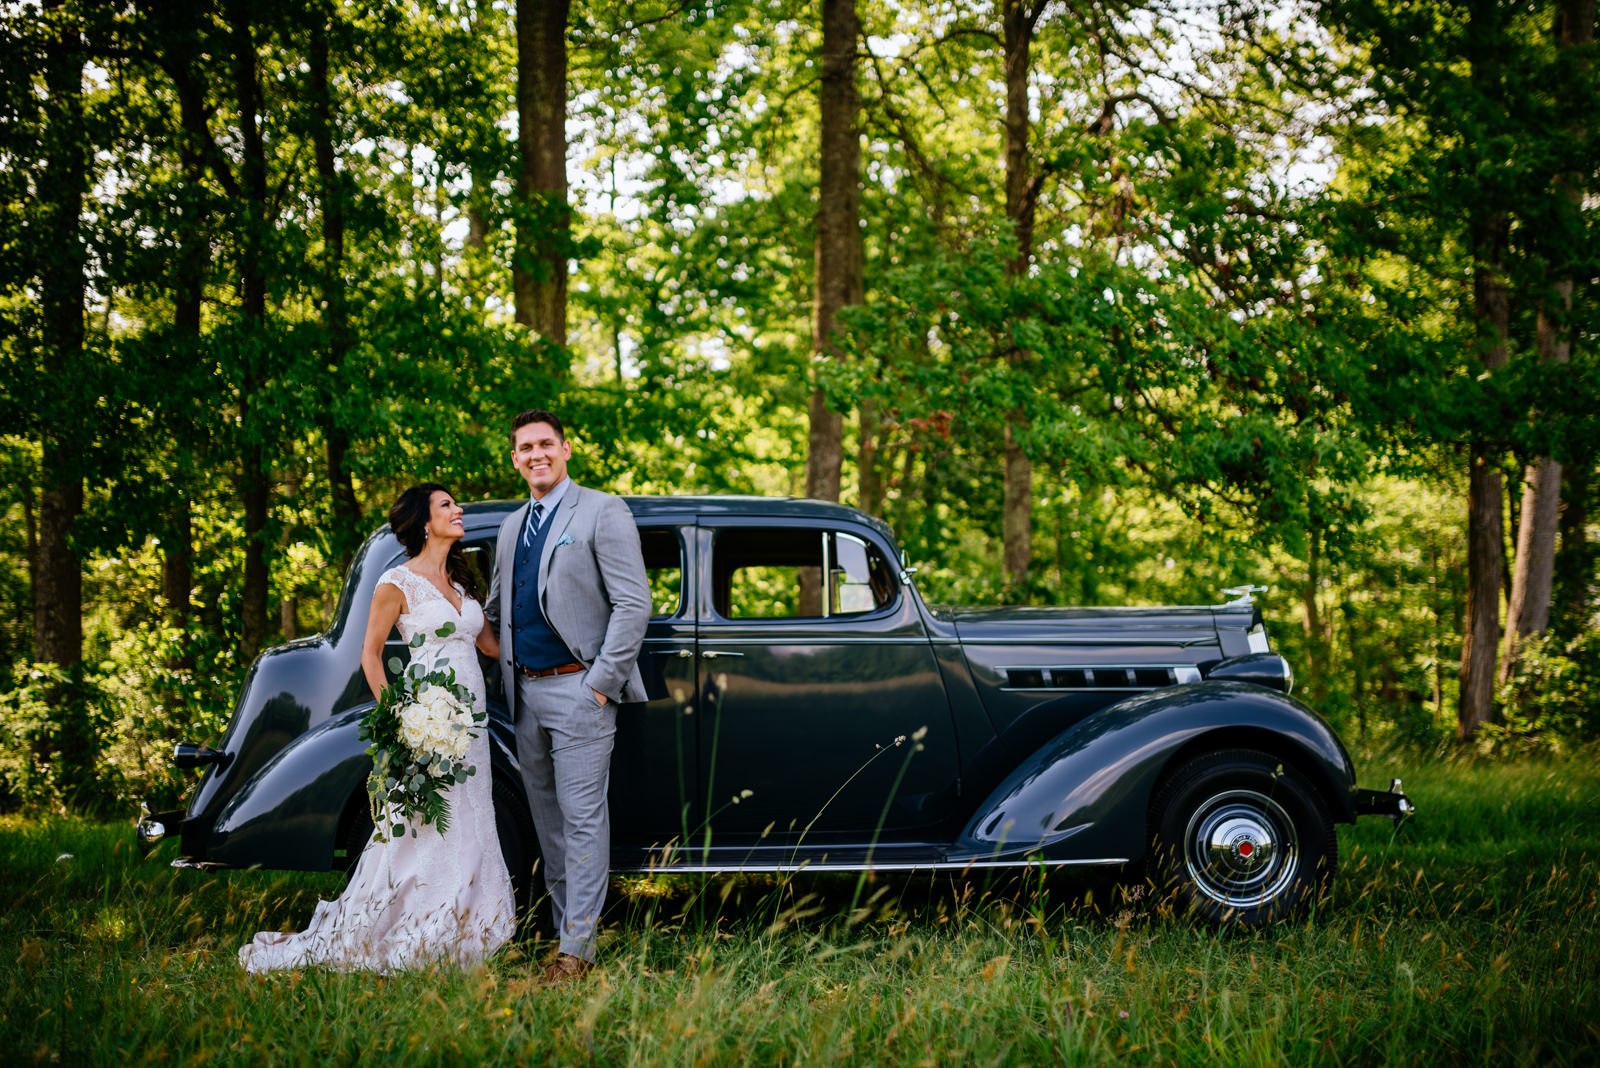 wedding portrait 1937 packard